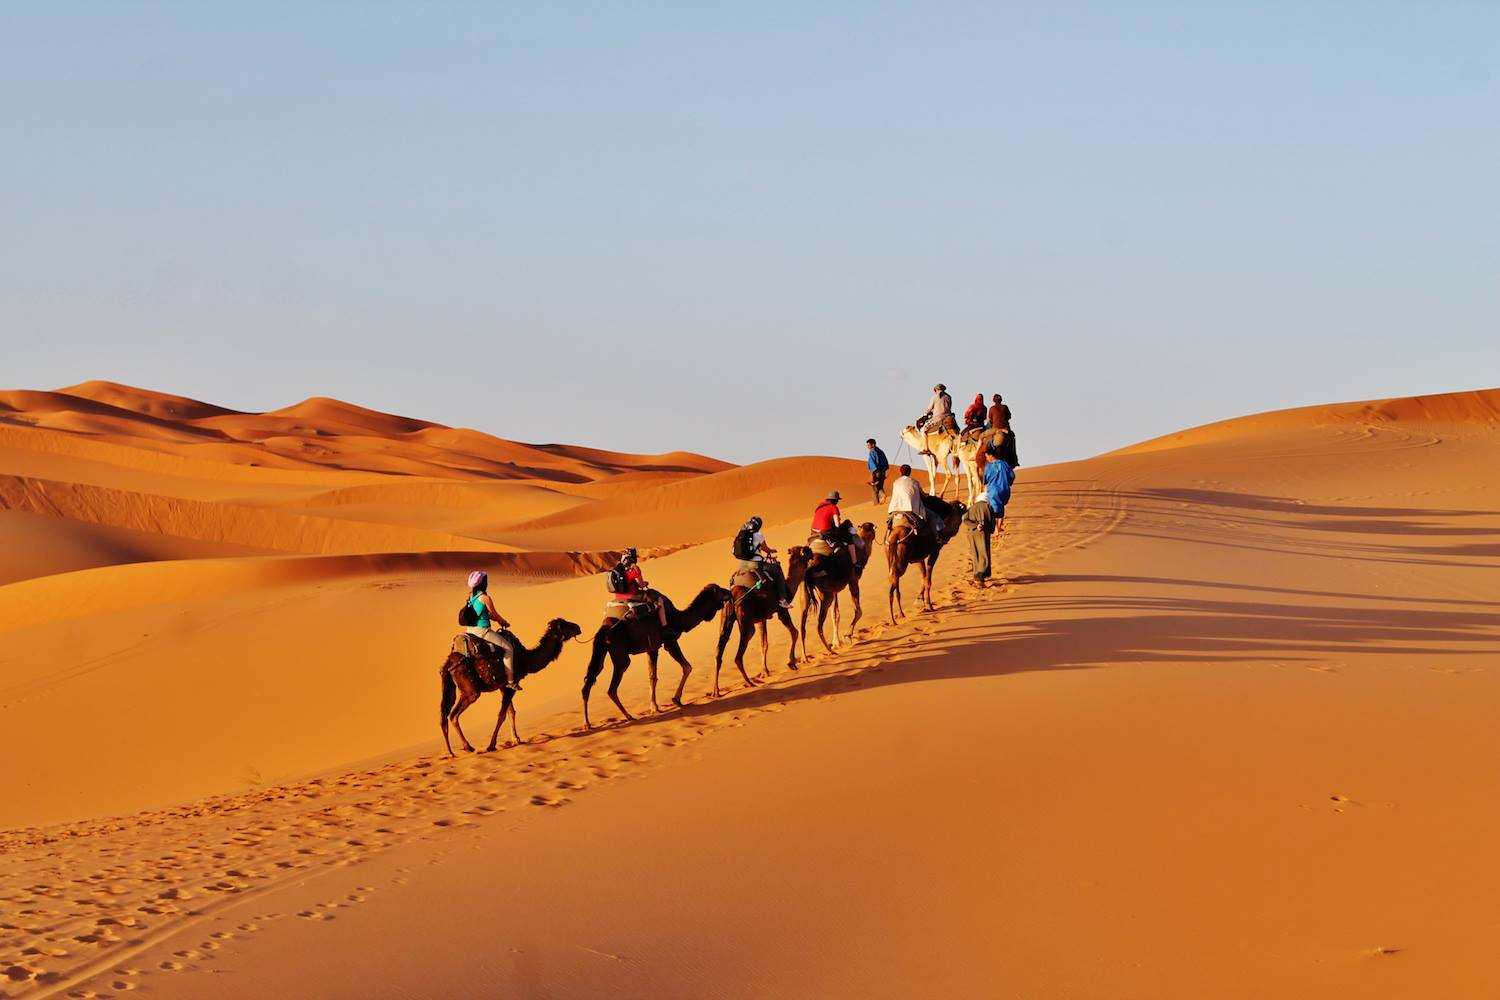 A camel trek in the desert is a highlight of a round trip in Morocco for most of the Central European visitors